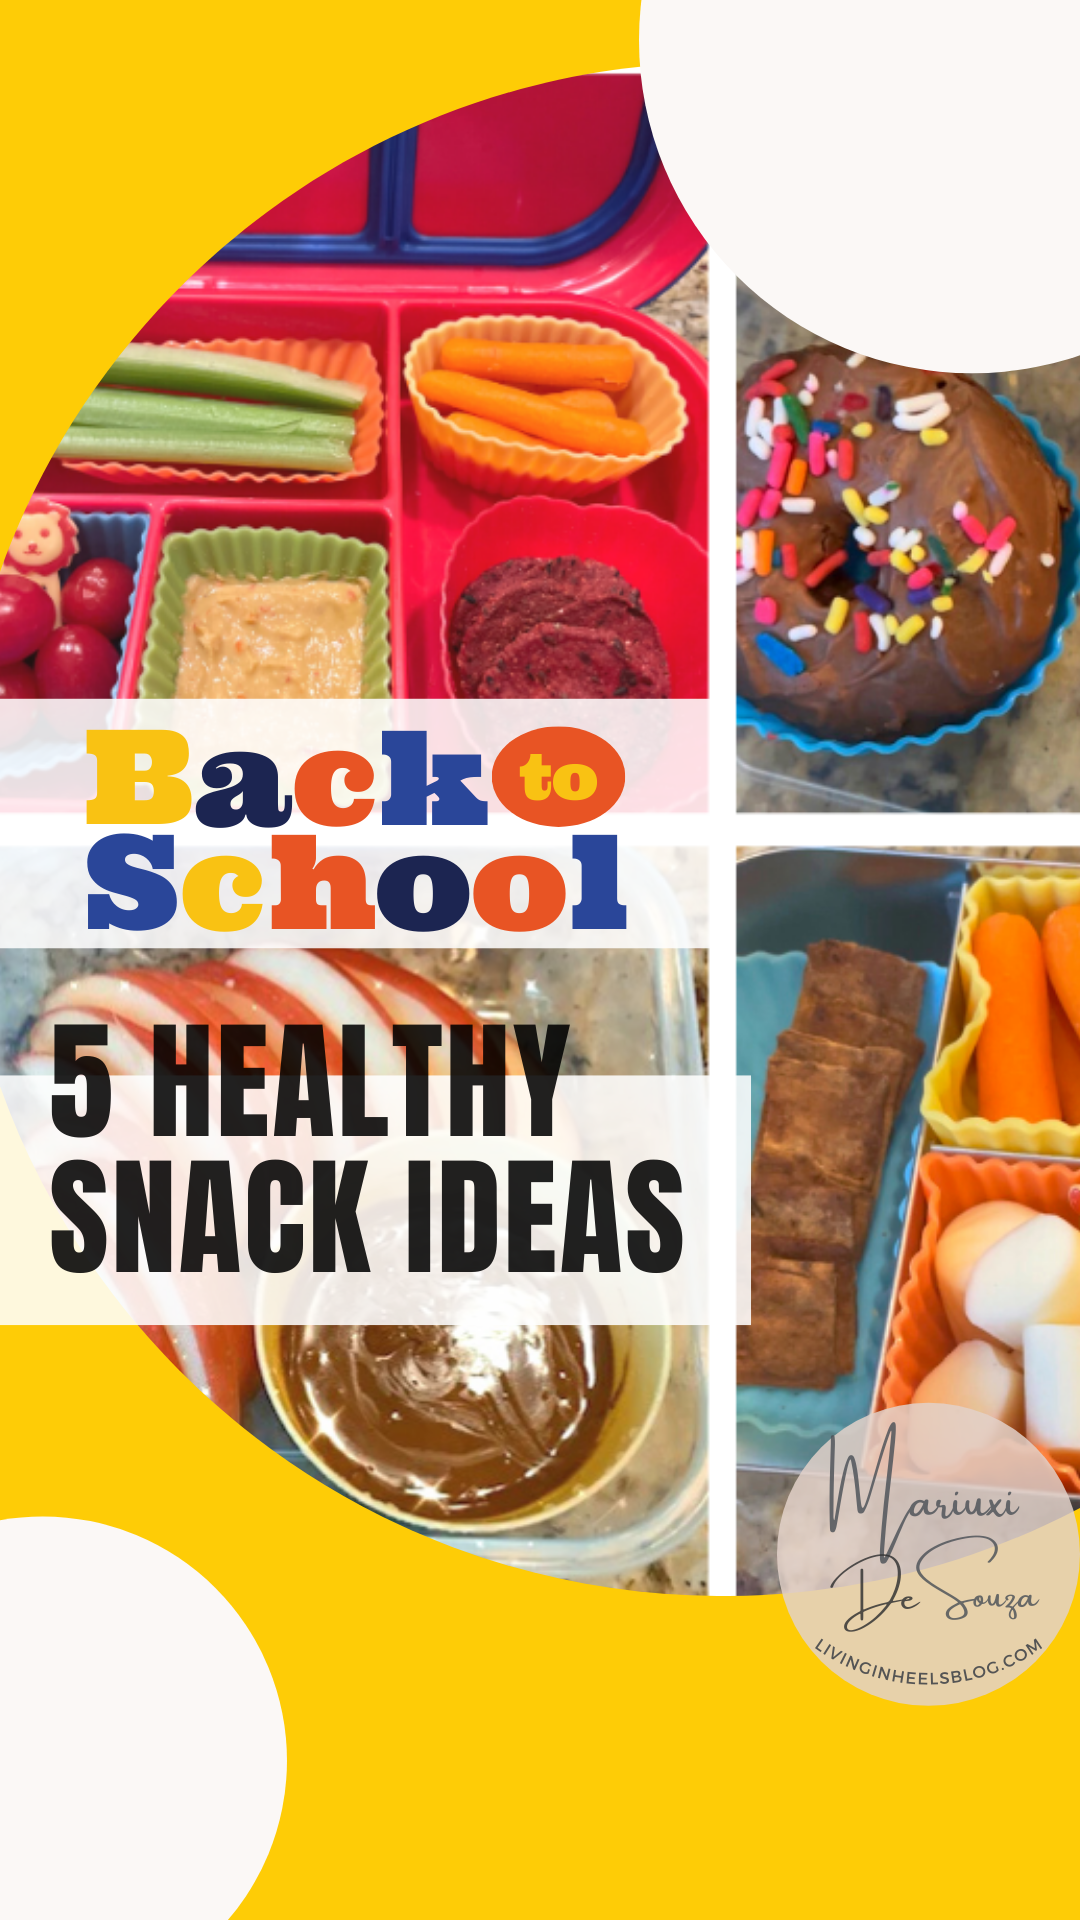 kids lunch ideas, healthy kids lunch ideas, healthy snacks for kids, back to school lunch ideas, back to school snack ideas, healthy snacks for kids, healthy lunch for kids, back to school healthy lunches